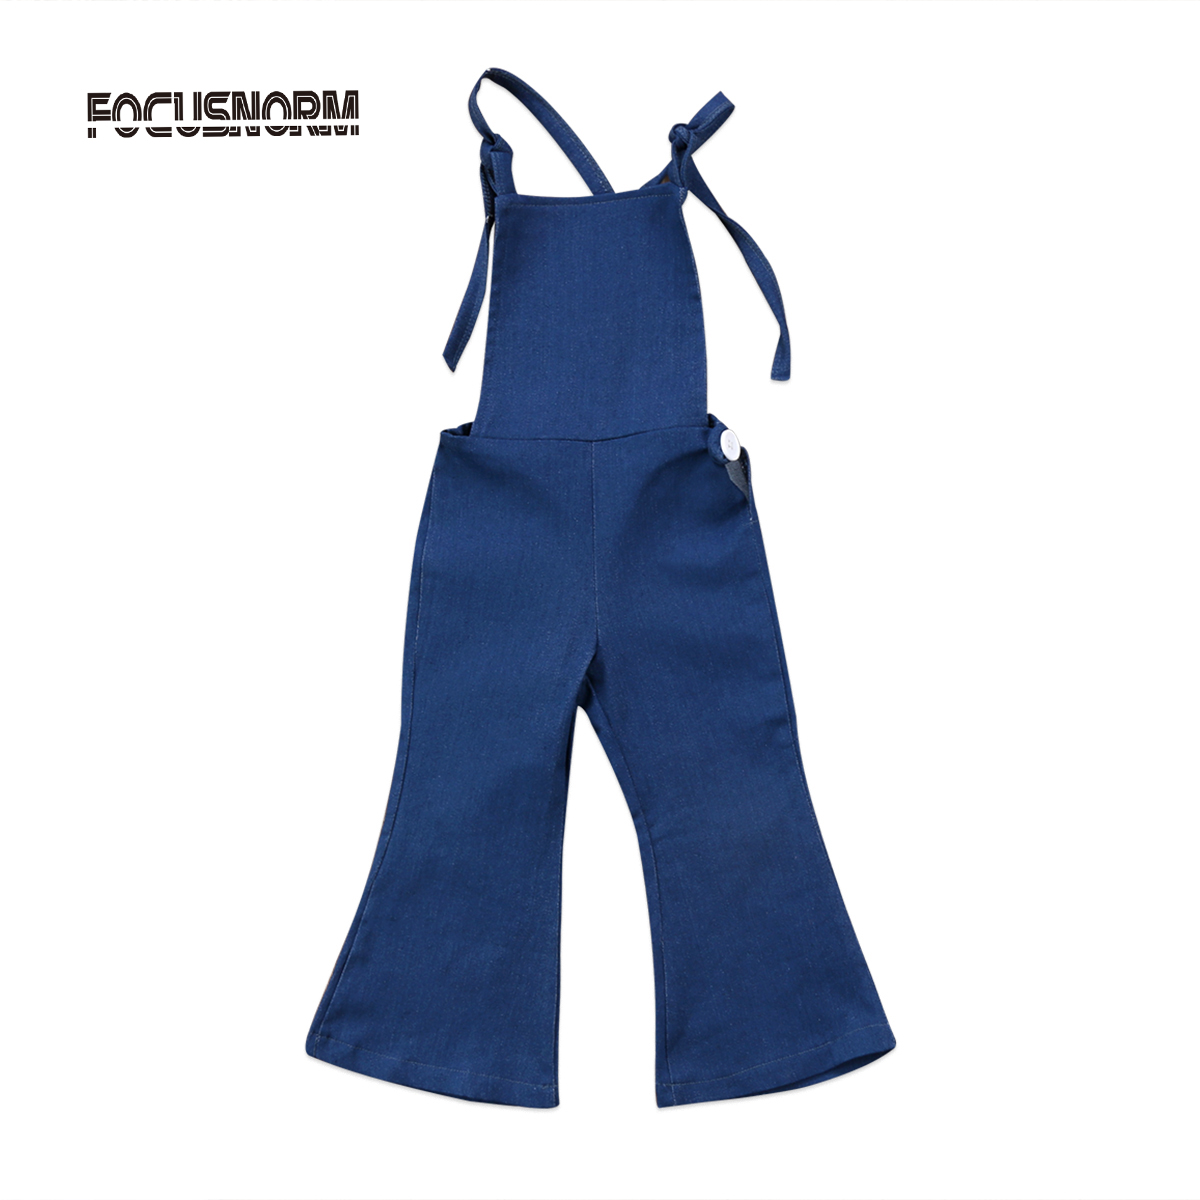 2017 Fashion Toddler Kids Girls Denim Strap Sleeveless Bib Pants Romper Backless Jumpsuit Playsuit Outfit Flare Trouser Clothes fashion 2pcs set newborn baby girls jumpsuit toddler girls flower pattern outfit clothes romper bodysuit pants